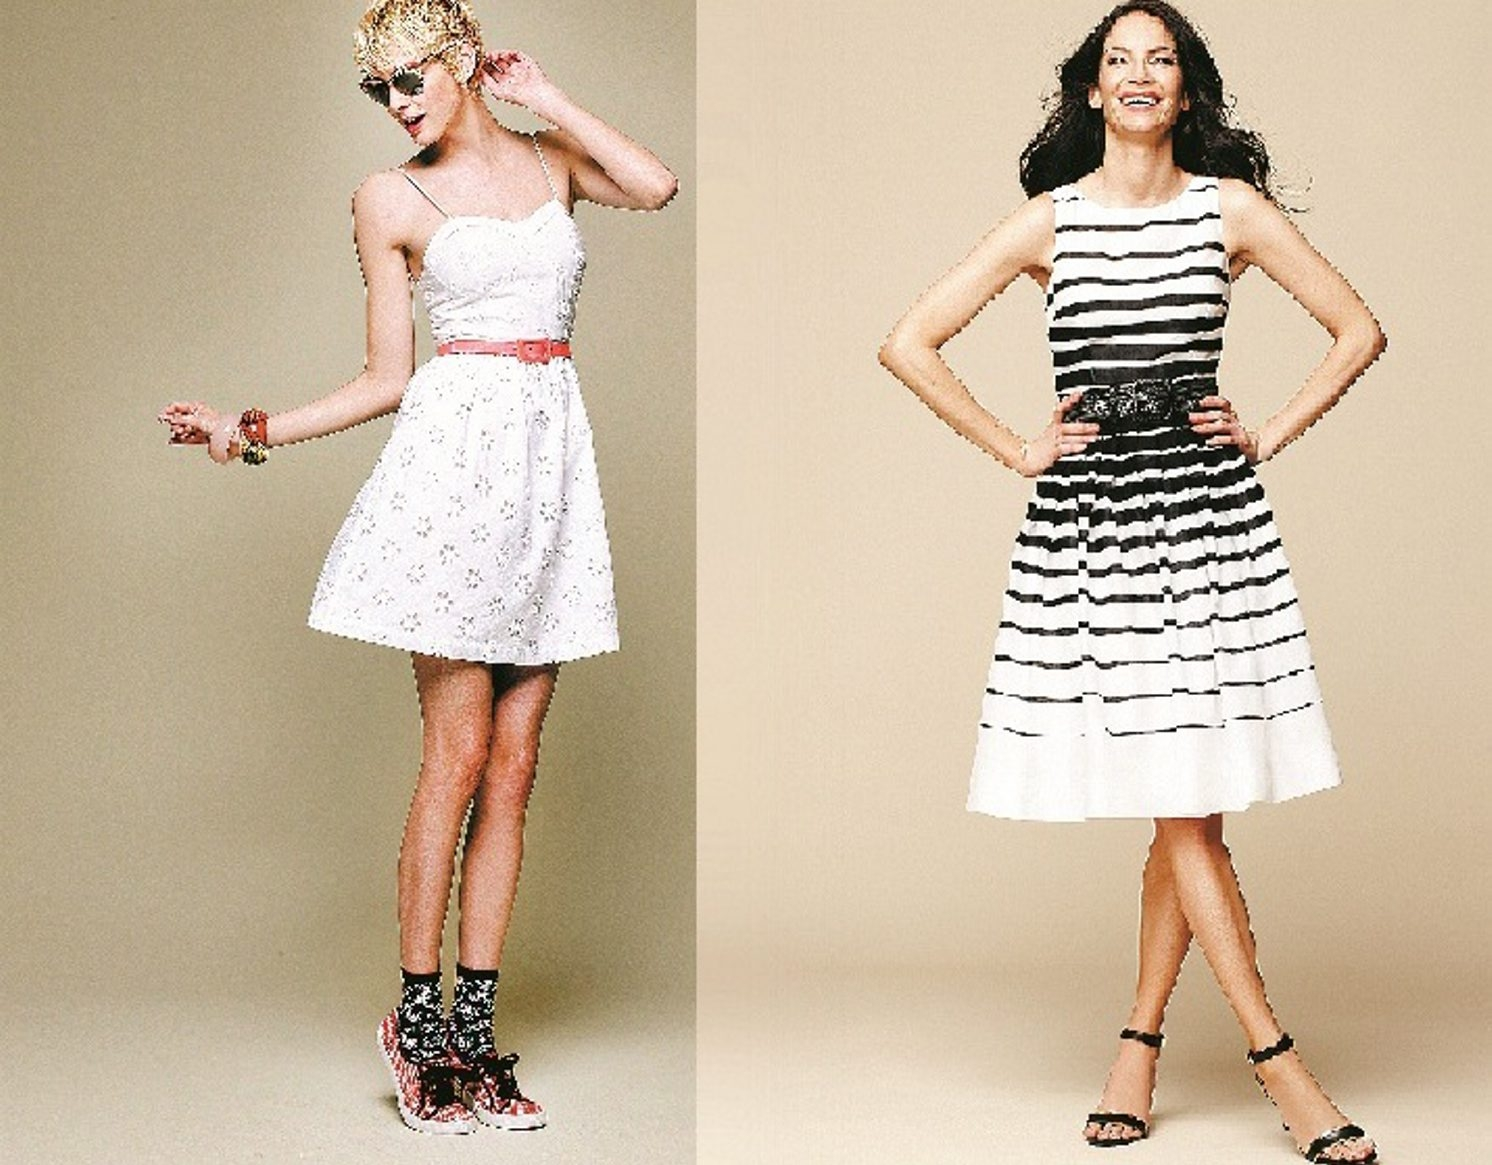 Fun summer dresses include the white eyelet dress from the Keds collection at select Macy's, left, and a striped dress from Talbots.